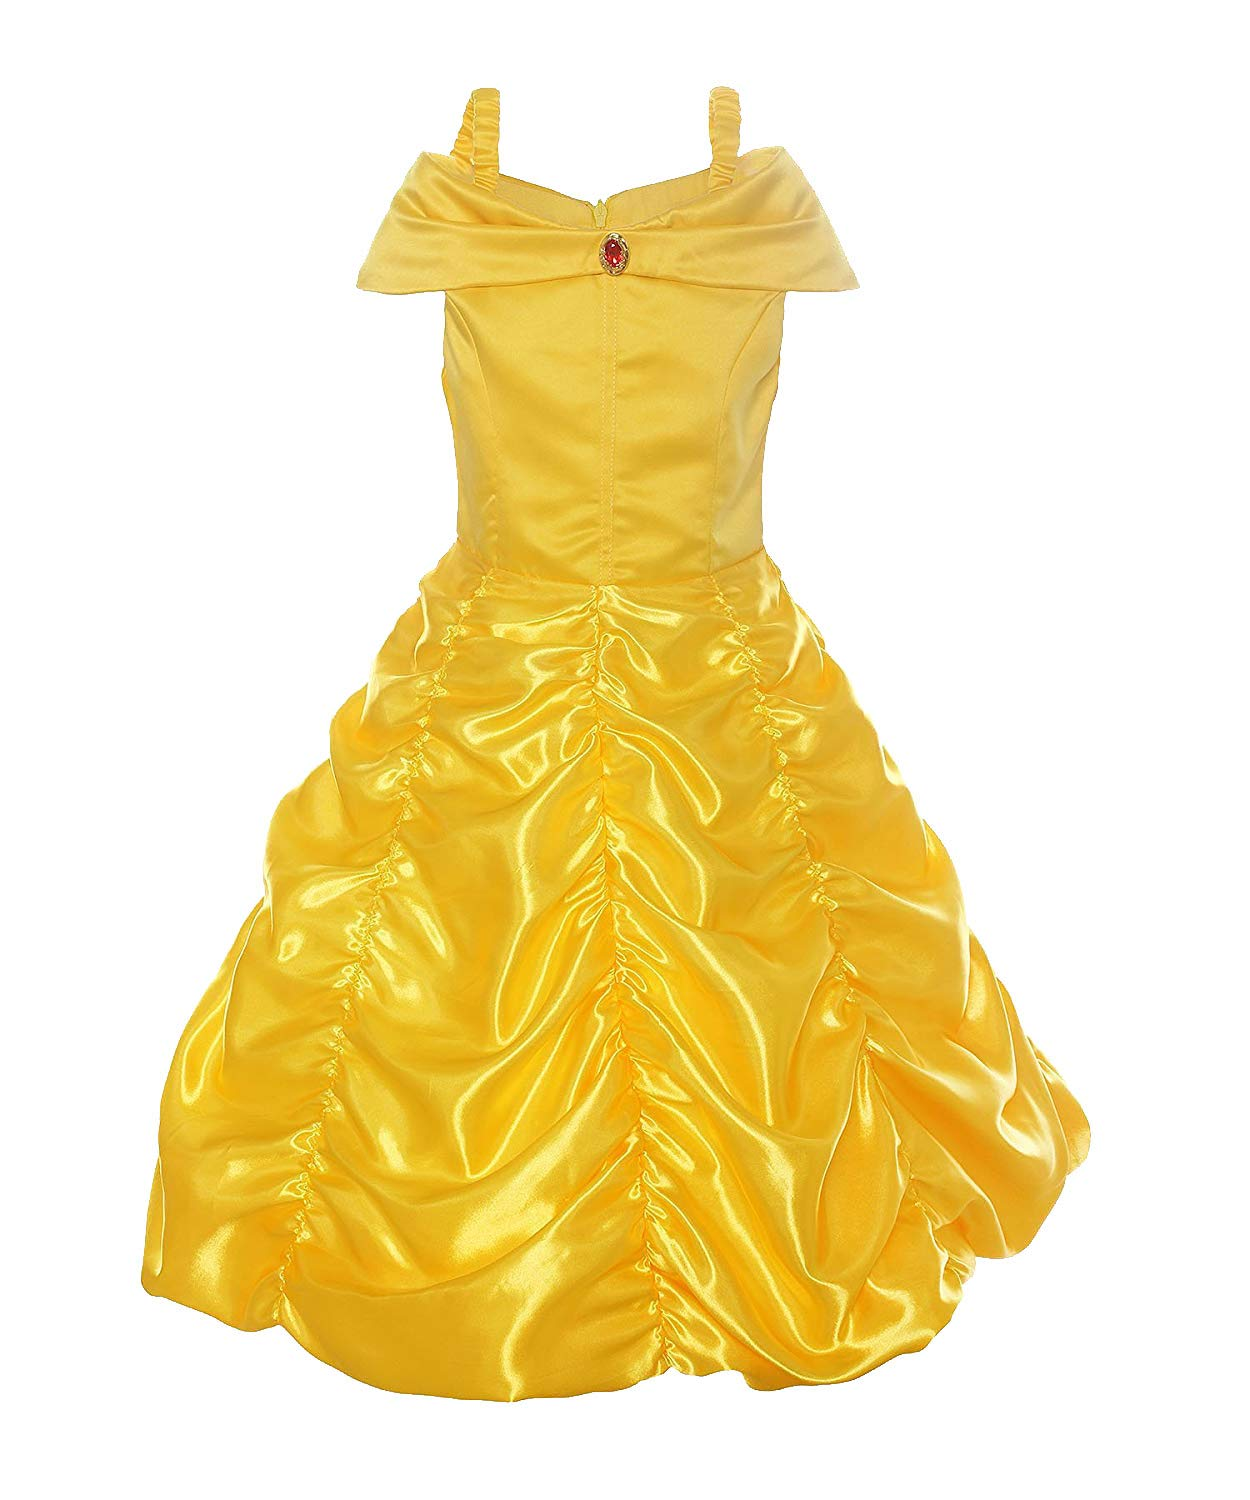 Princess Belle Off Shoulder Layered Halloween Costume Dress for Little Girl (7 Years, Yellow)